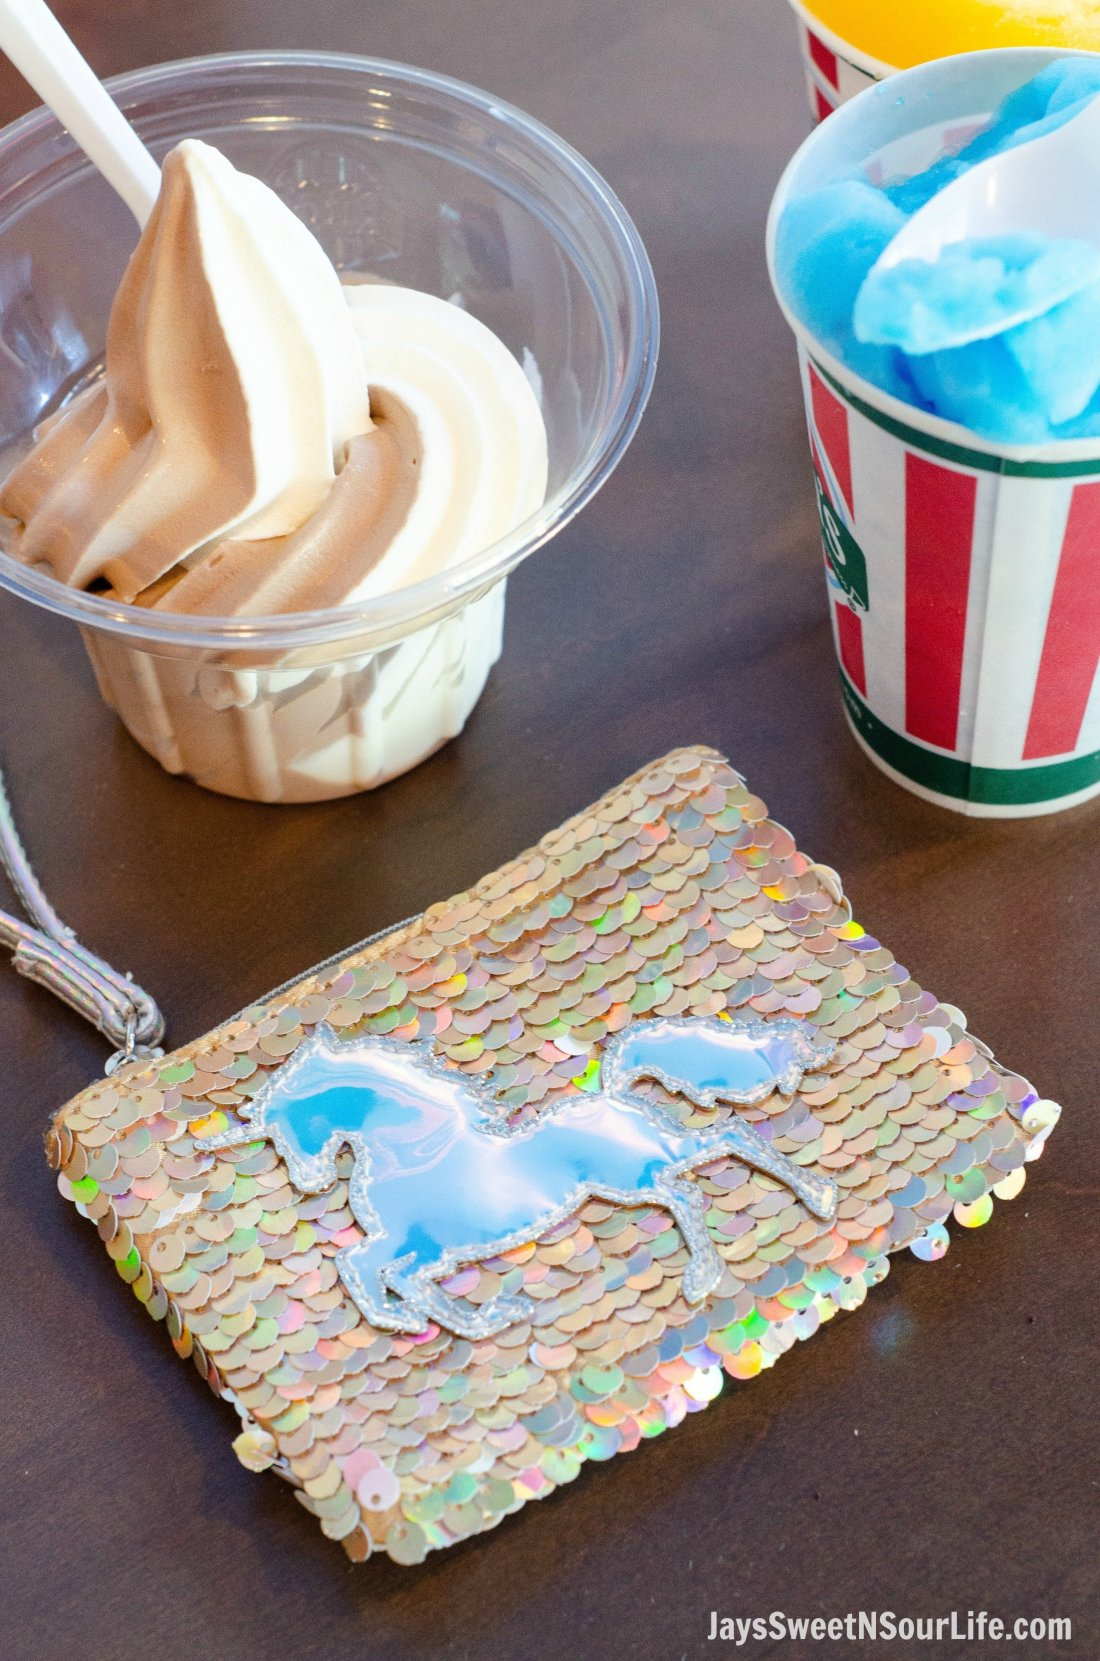 Justice Back To School Unicorn Wallet Lifestyle Ice Cream. Back To School Must Have Fashion For Tweens via JaysSweetNSourLife.com